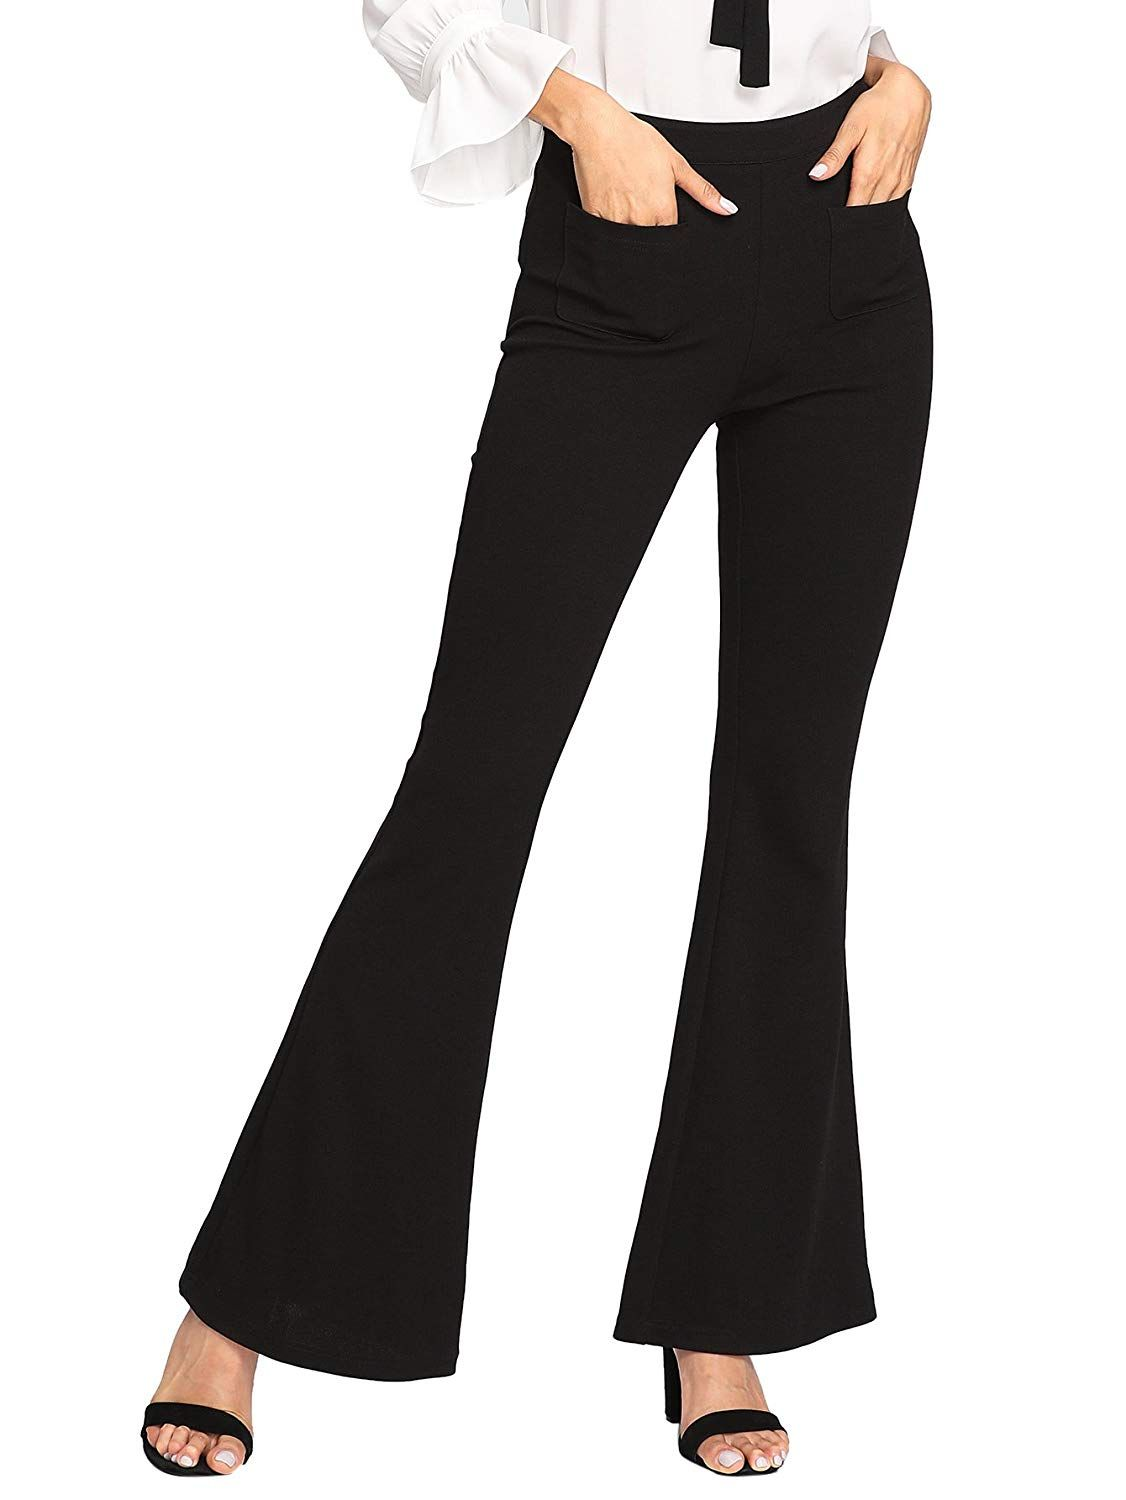 b973ca299 SheIn Women's Casual Stretchy High Waist Wide Leg Dress Pants at Amazon  Women's Clothing store: